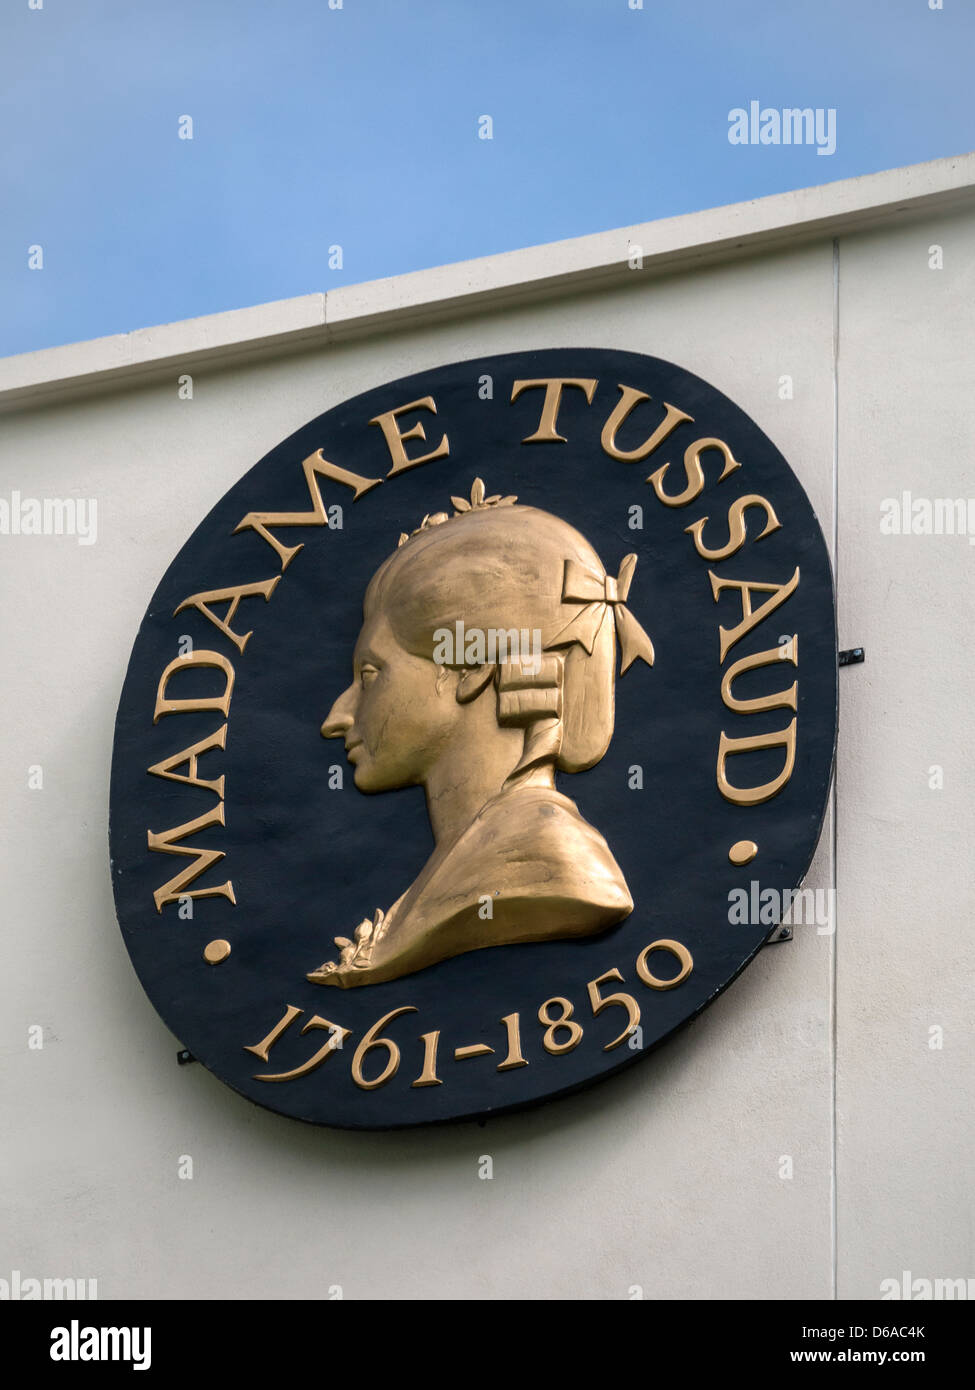 Sign above Madame Tussauds attraction in London - Stock Image